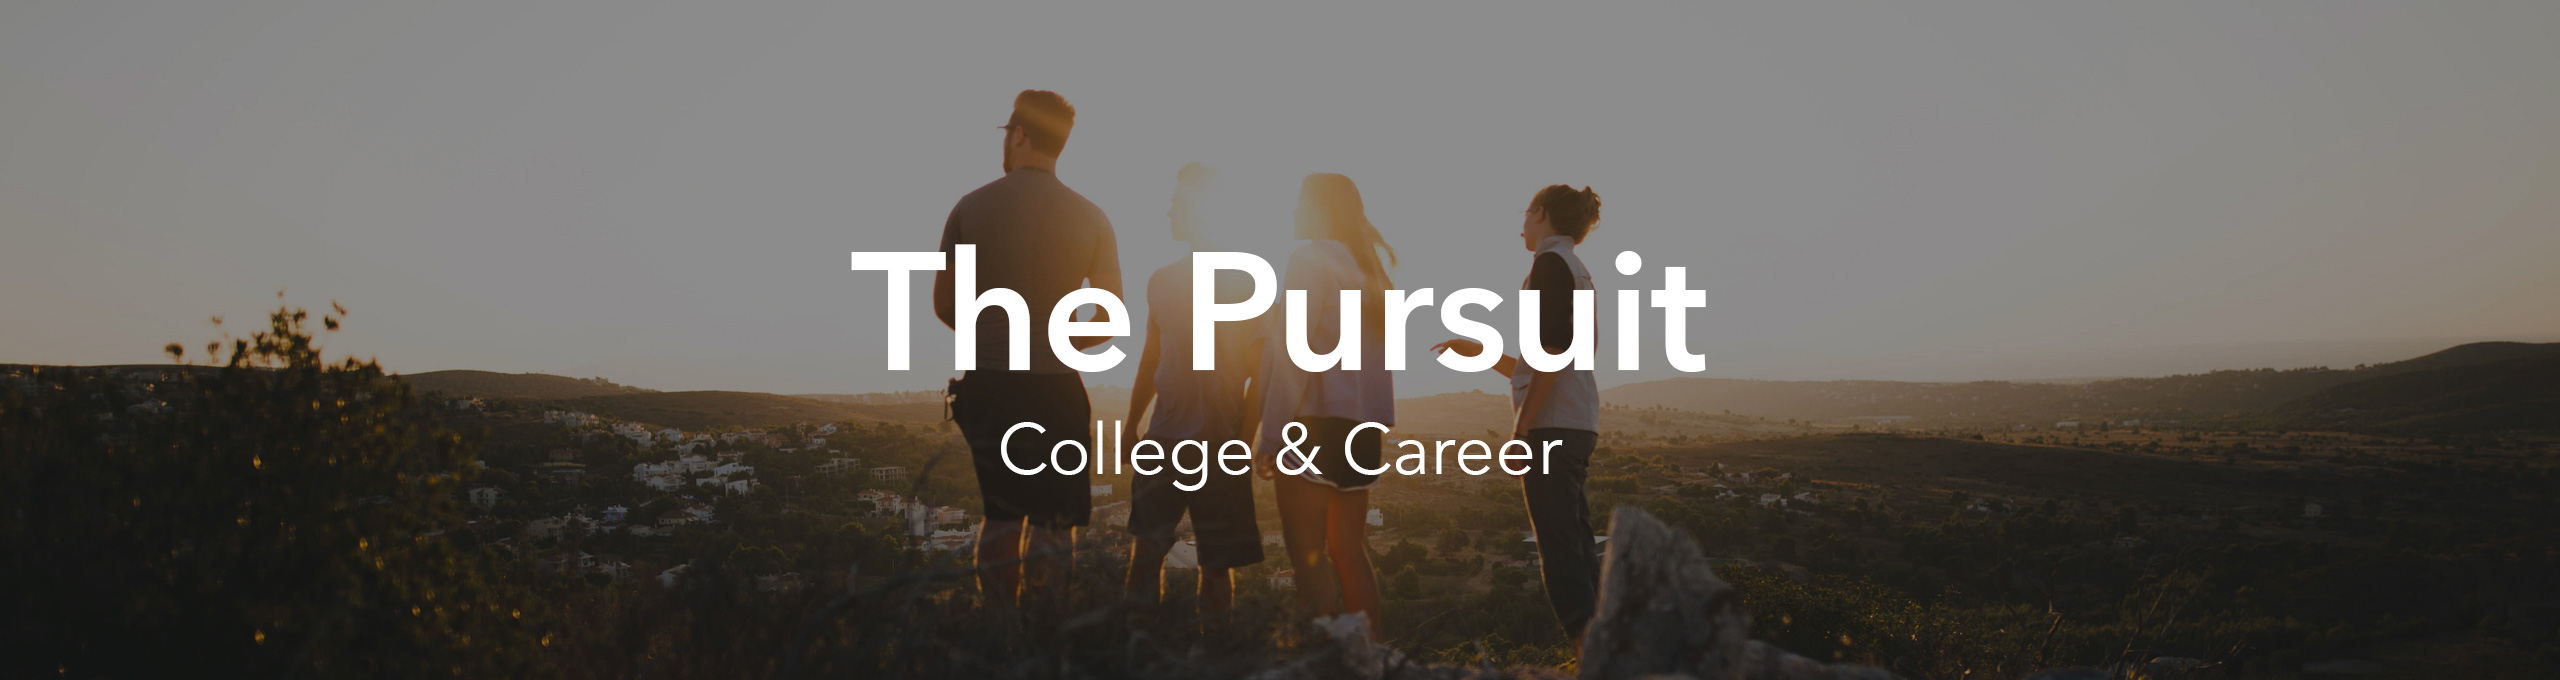 College & Career (The Pursuit)